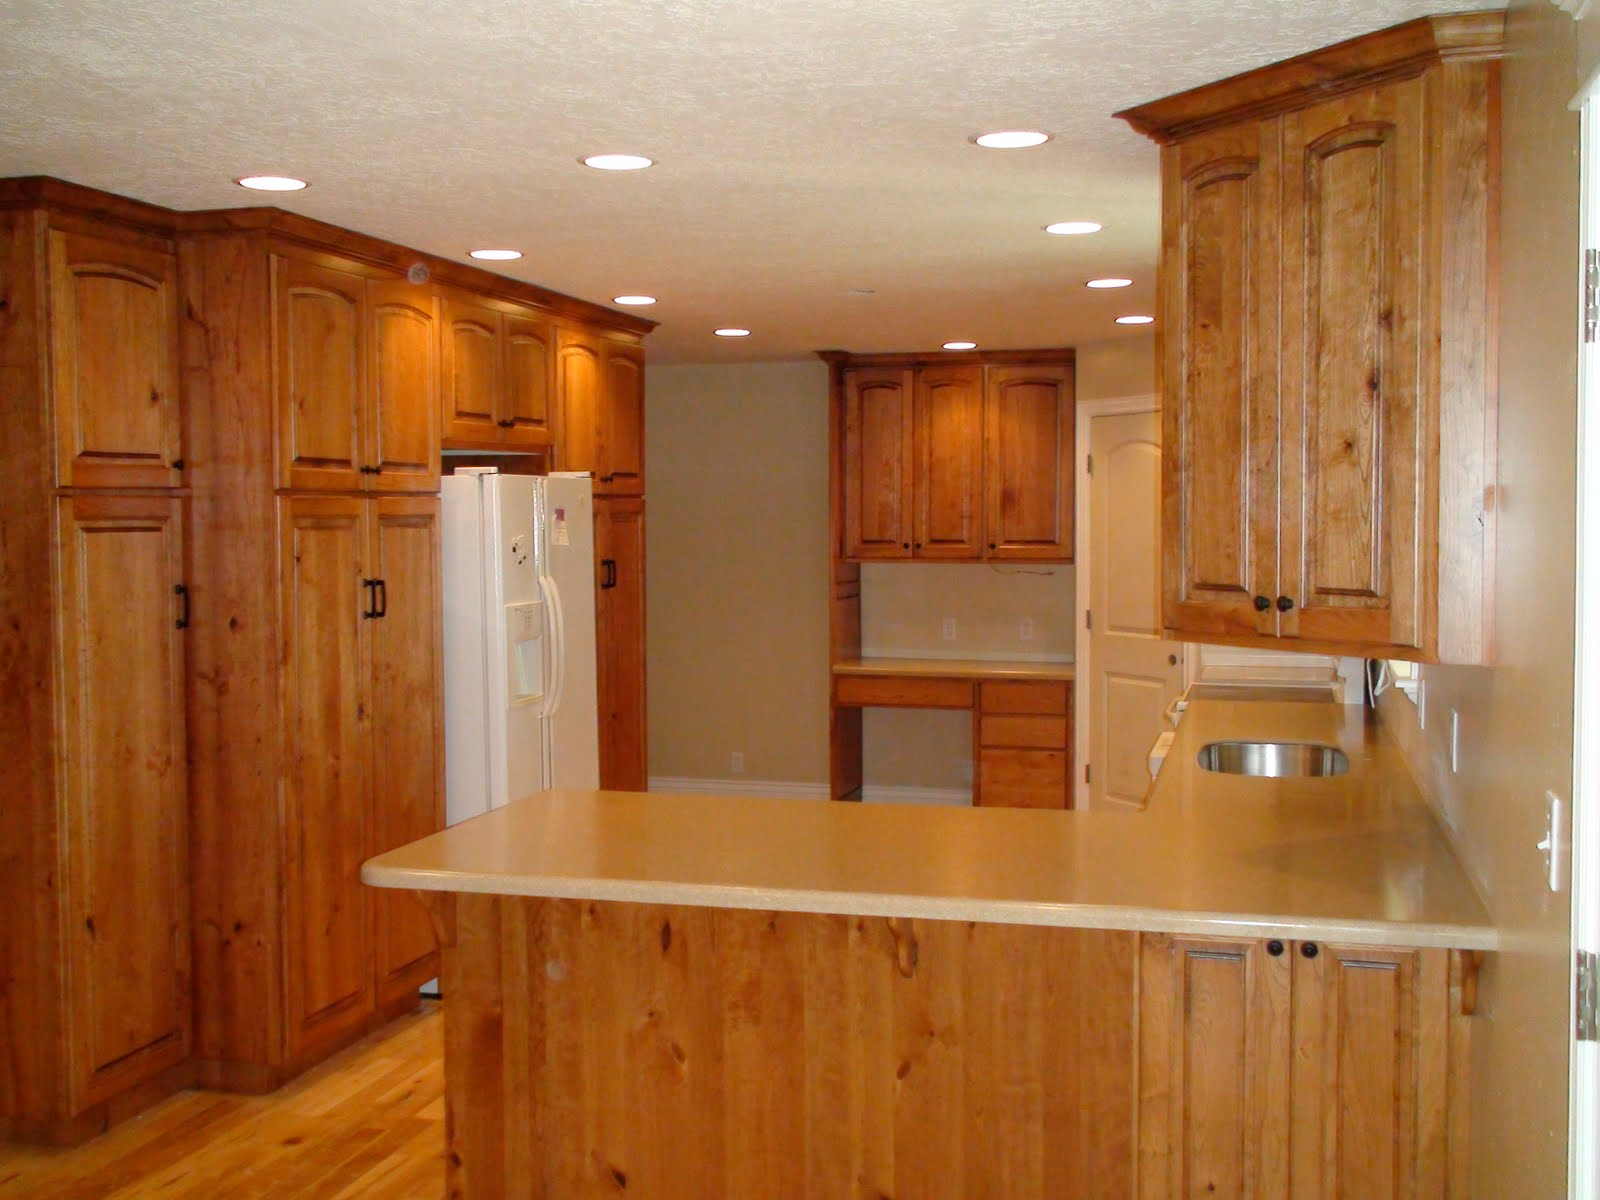 Cherry Wood Kitchen with Oak Cabinets